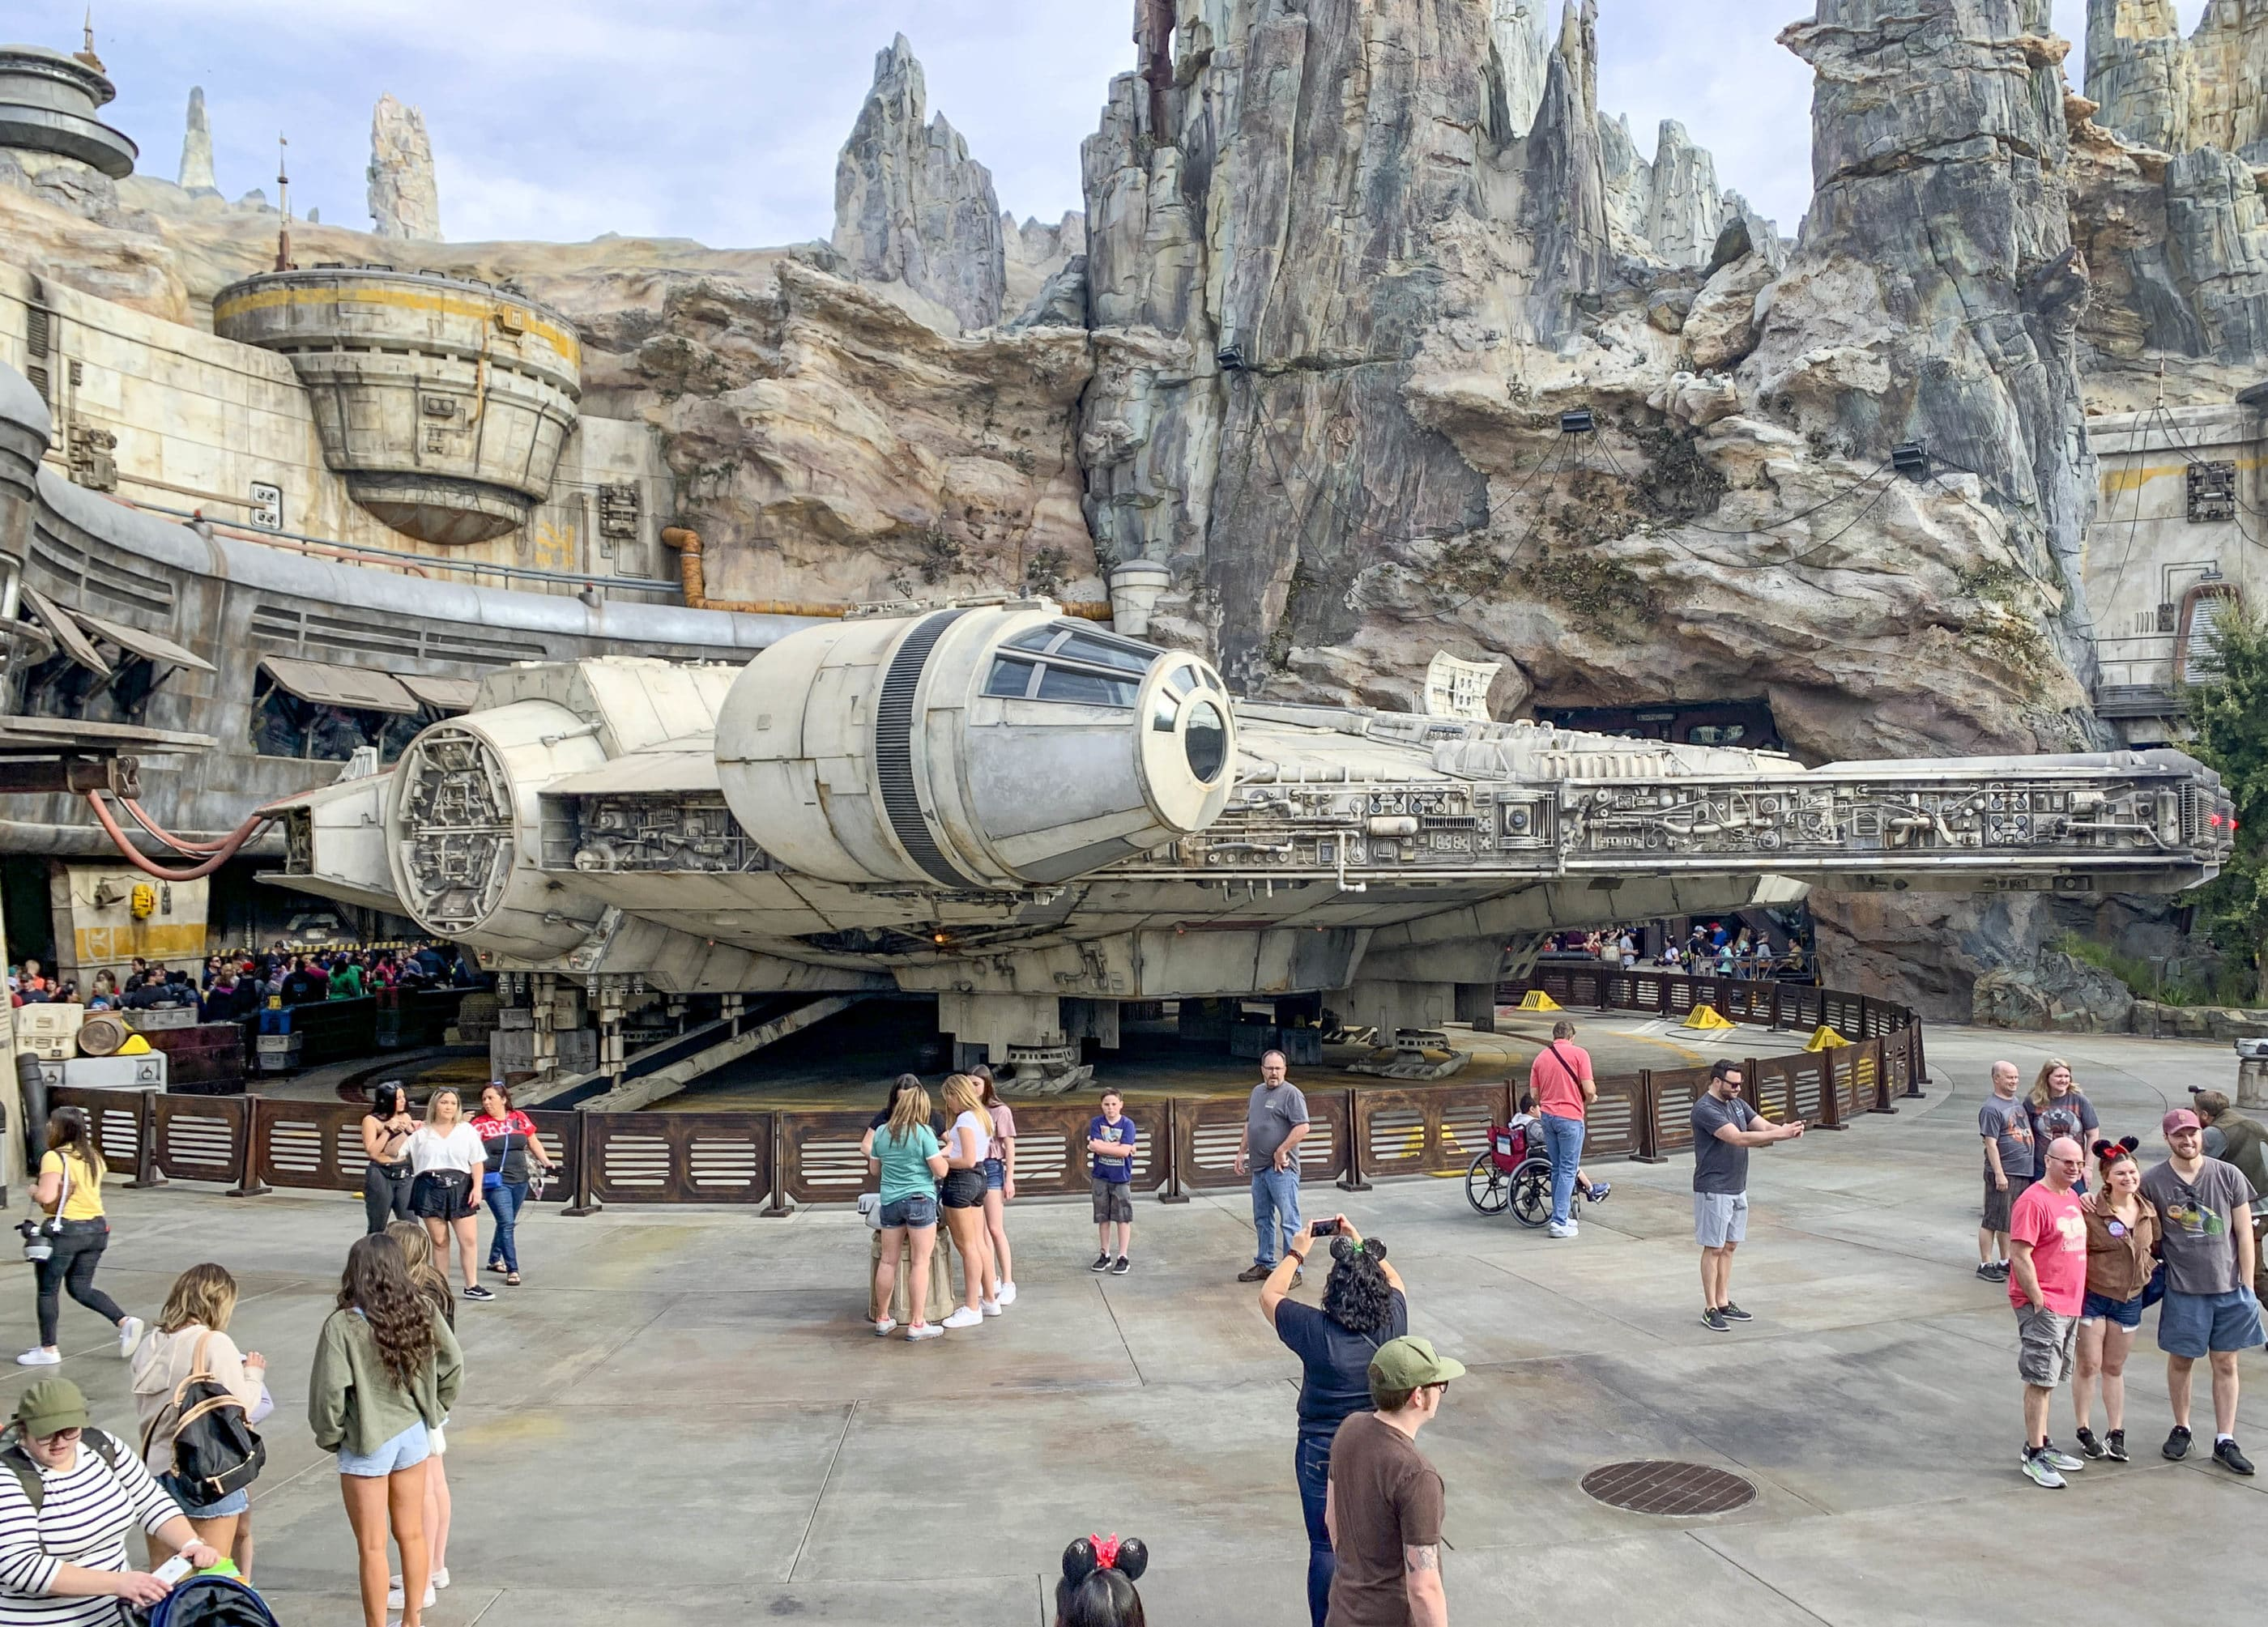 The Millennium Falcon in Star Wars: Galaxy's Edge at Disneyland, one of the most popular Anaheim kids activities.